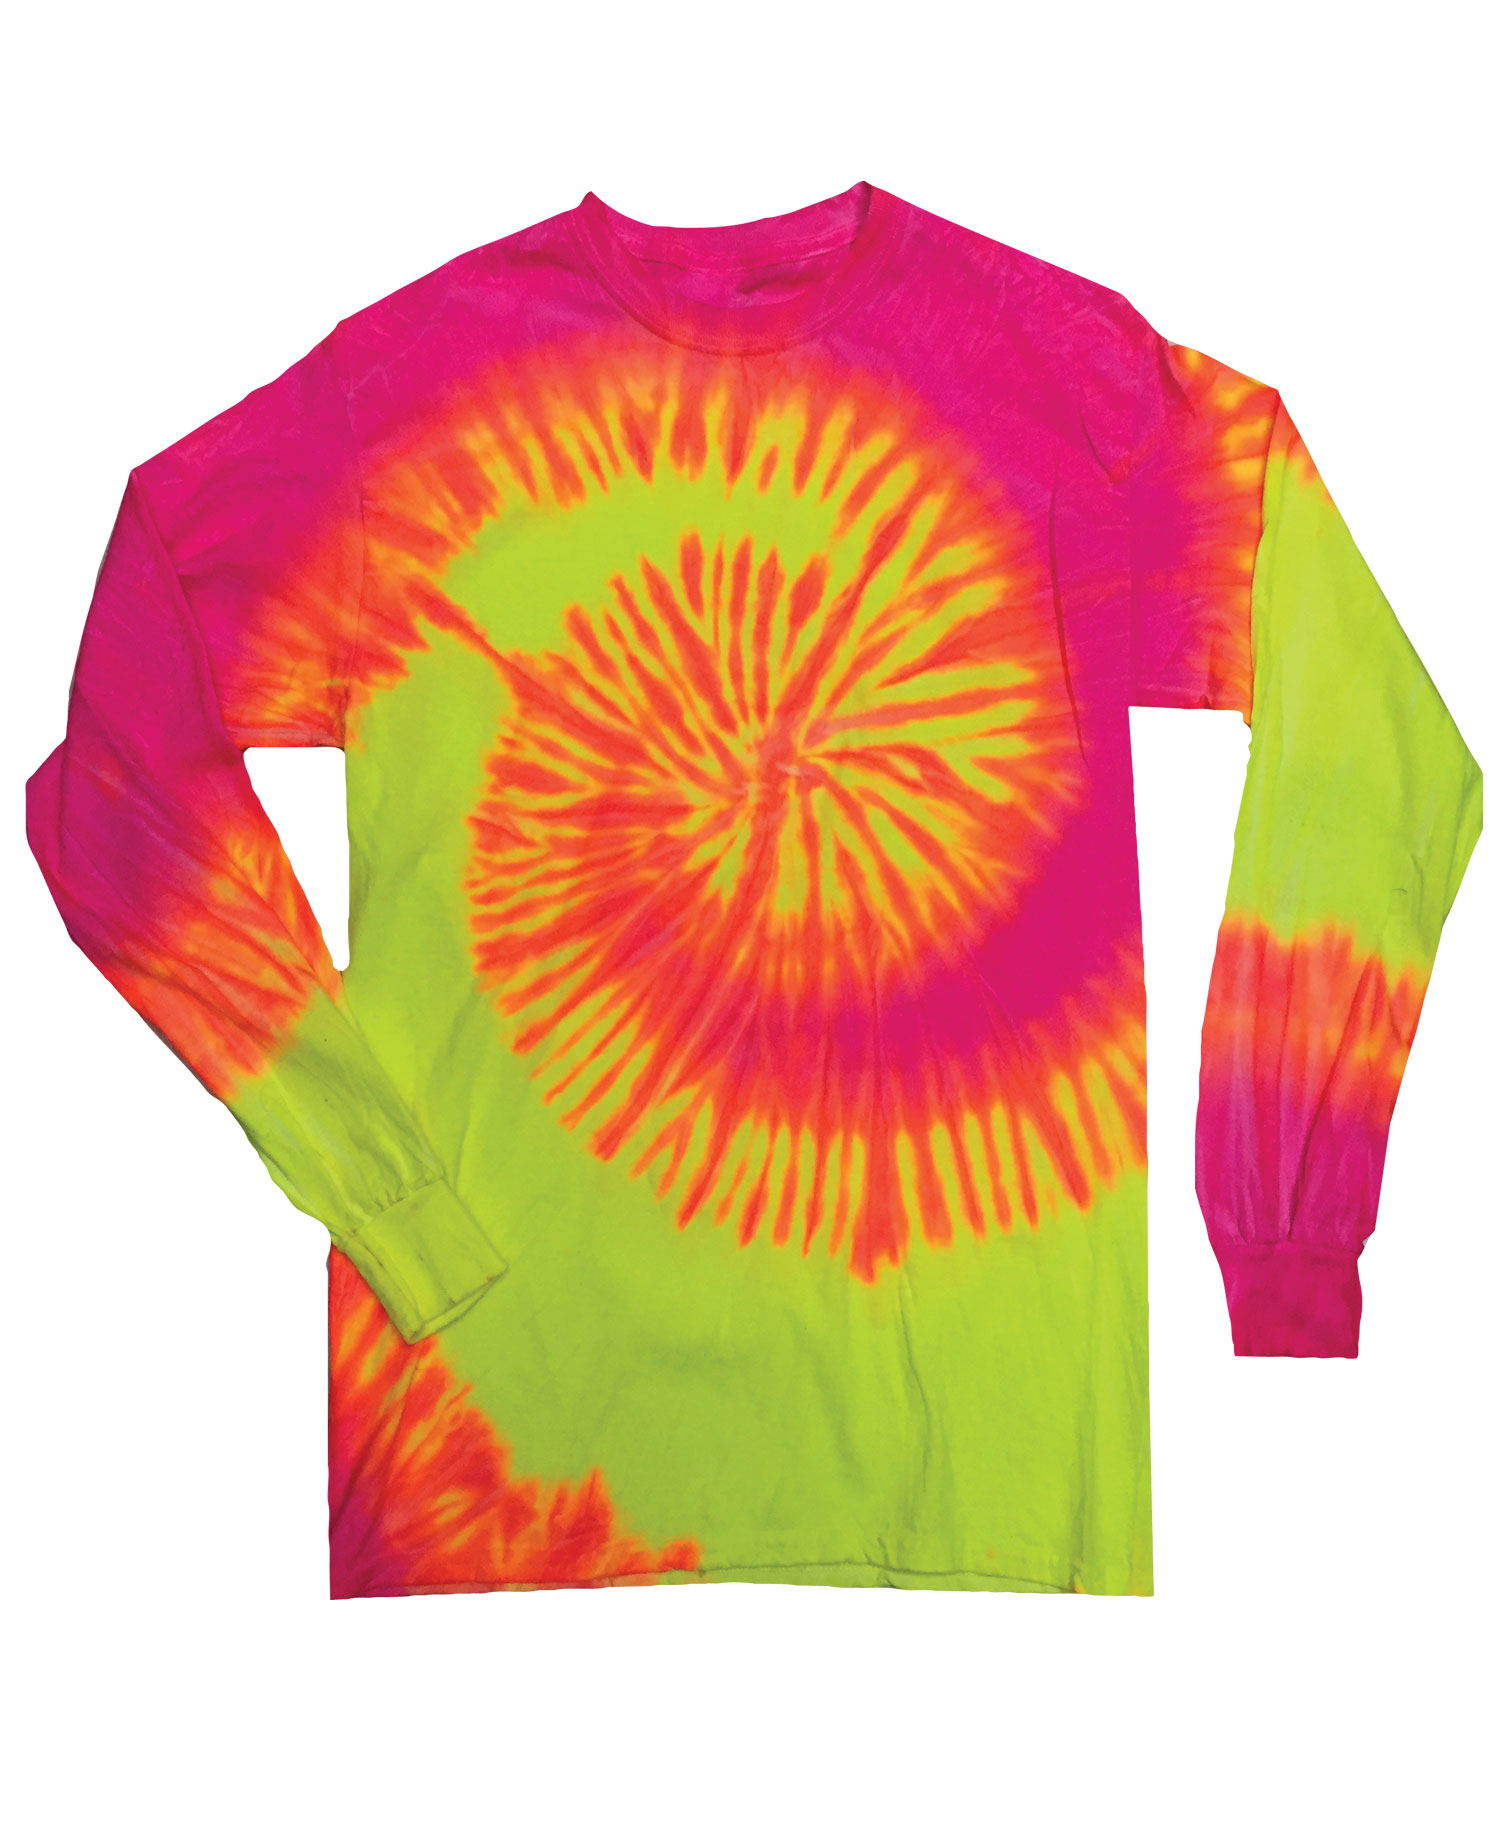 Colortone - T303P Fluorescent Swirl Long Sleeve Tie ...